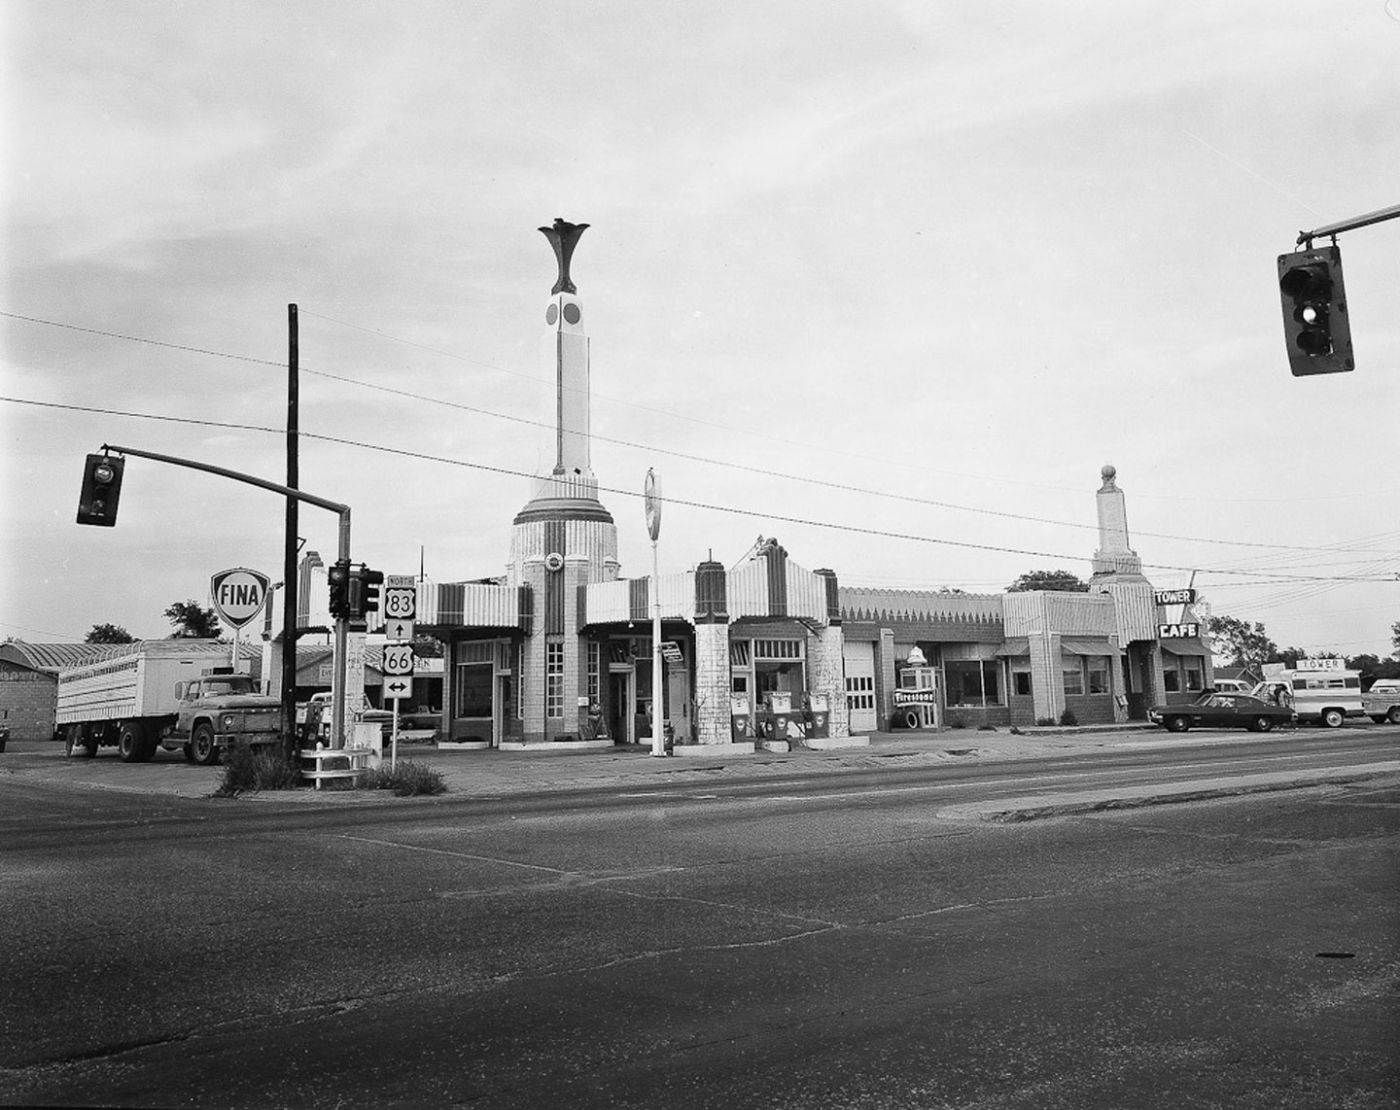 "NZ Library #1: John Schott: Route 66, Special Limited Edition (with Gelatin Silver Contact Print ""Untitled"" from the Series ""Route 66 Motels,"" Intersection and a Fina Service Station) (NZ Library - Set One, Volume Six)"